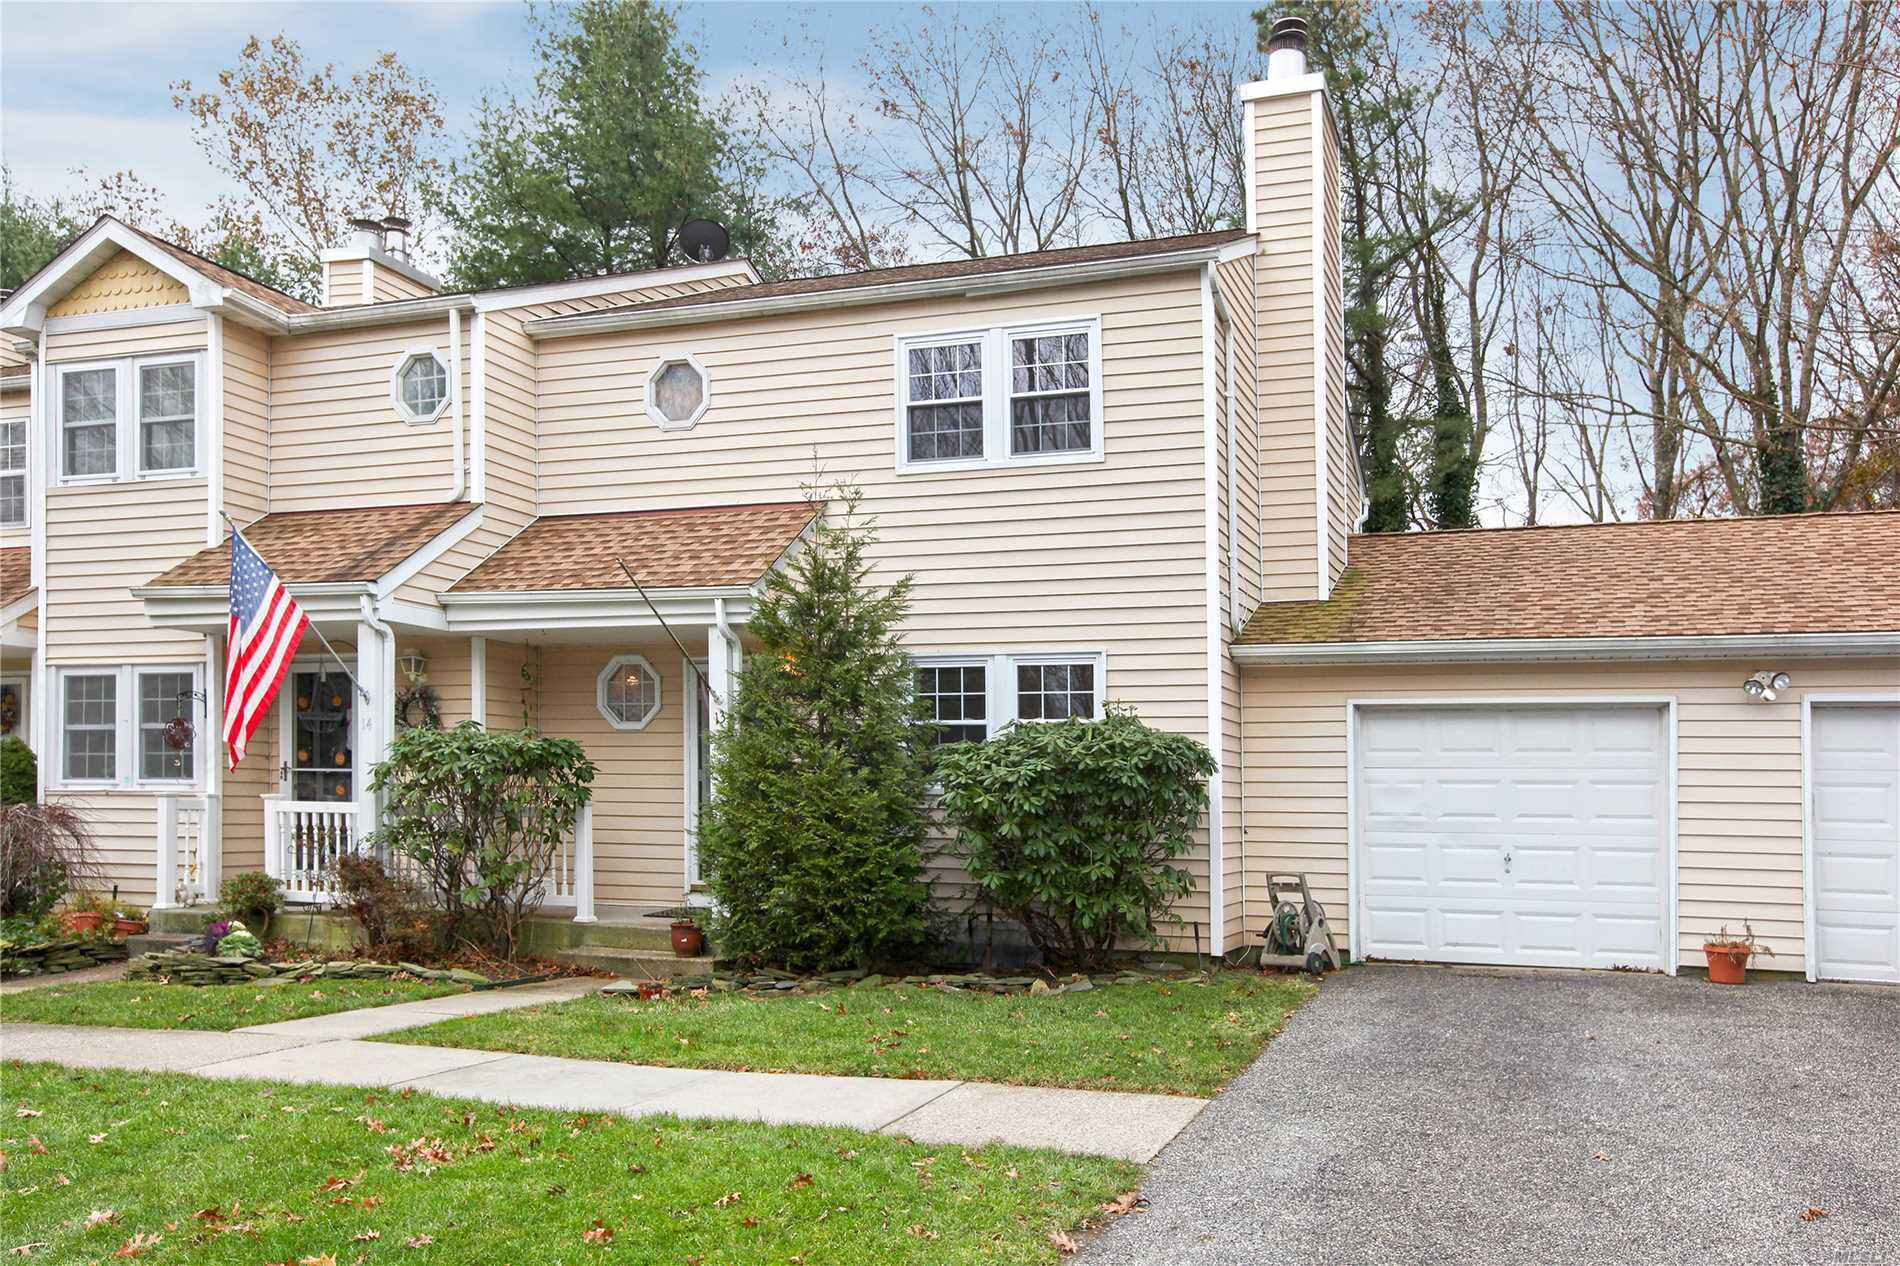 Wonderful Three Bedroom Cedar Model End Unit With Attached Garage, And Full Basement. Unit Features A Fireplace, Formal Dining Room, Two Half Baths And A Large Full Bath. Whispering Pines Offers Community Inground Pool, Tennis, Clubhouse, And More! Heat And Air Updated!